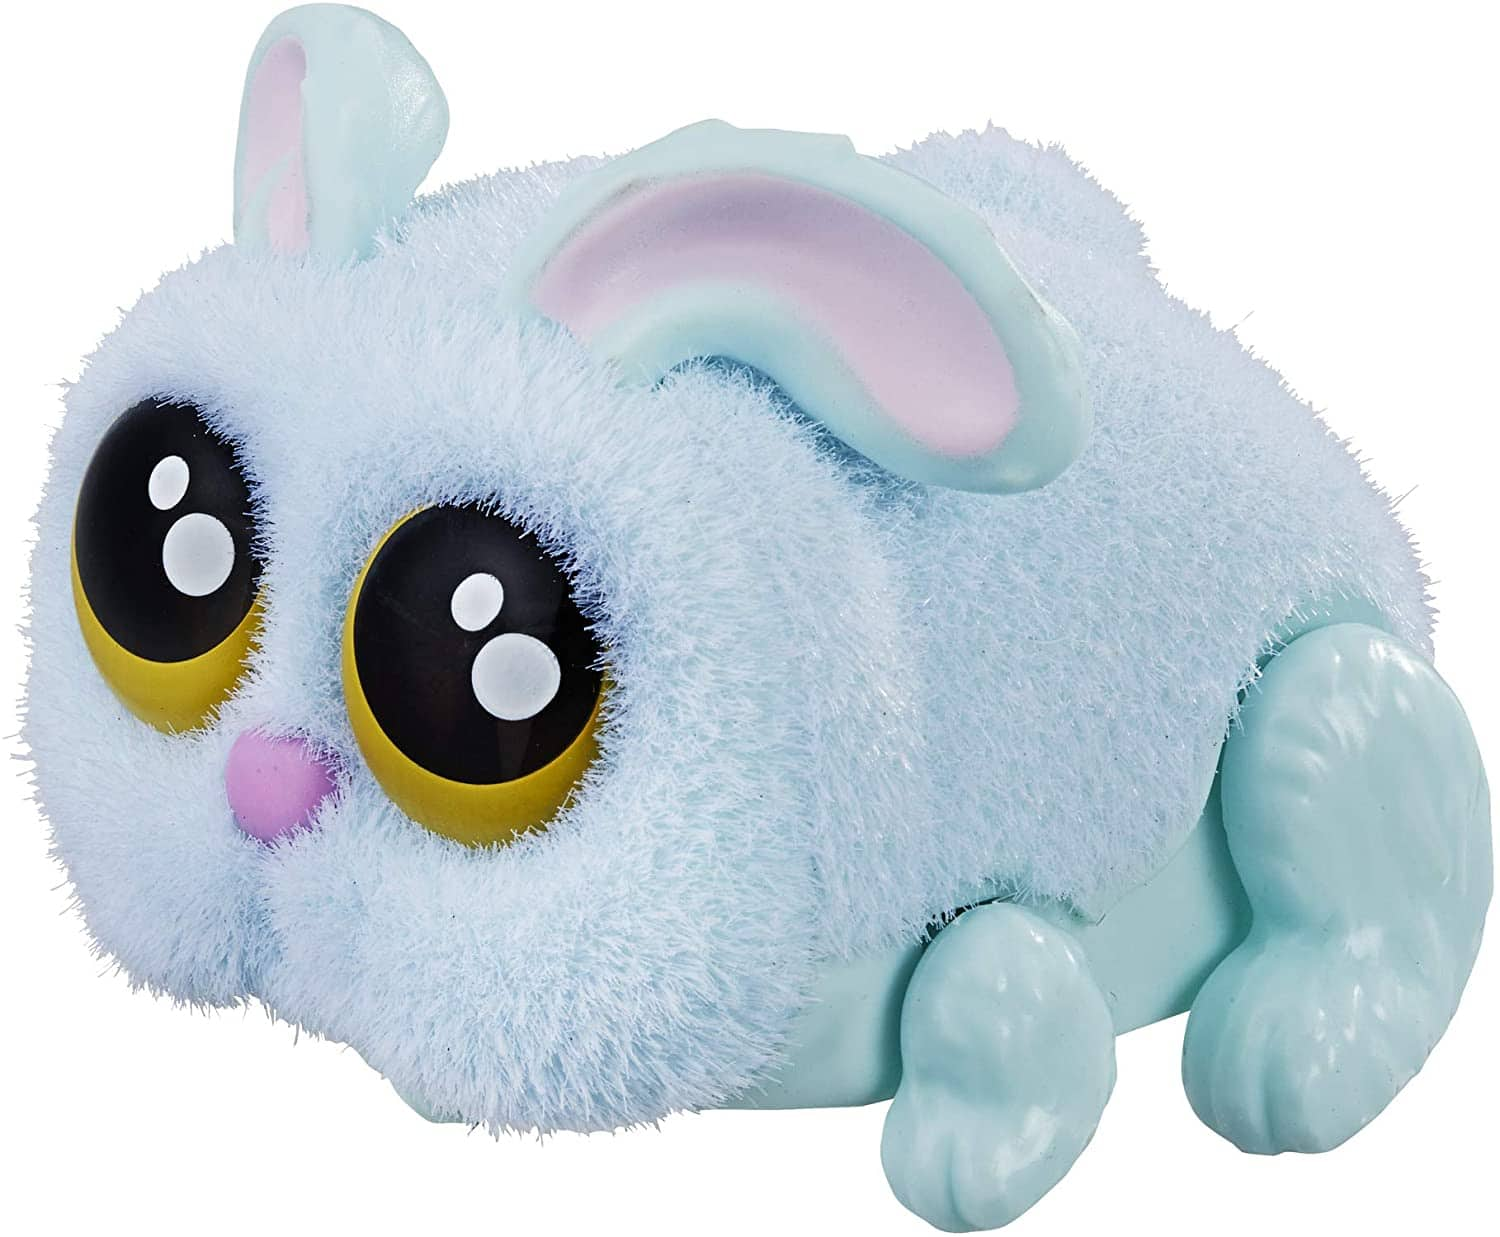 Yellies! Hasbro Toys Voice-Activated Bunny Pet from $7.27 - Amazon